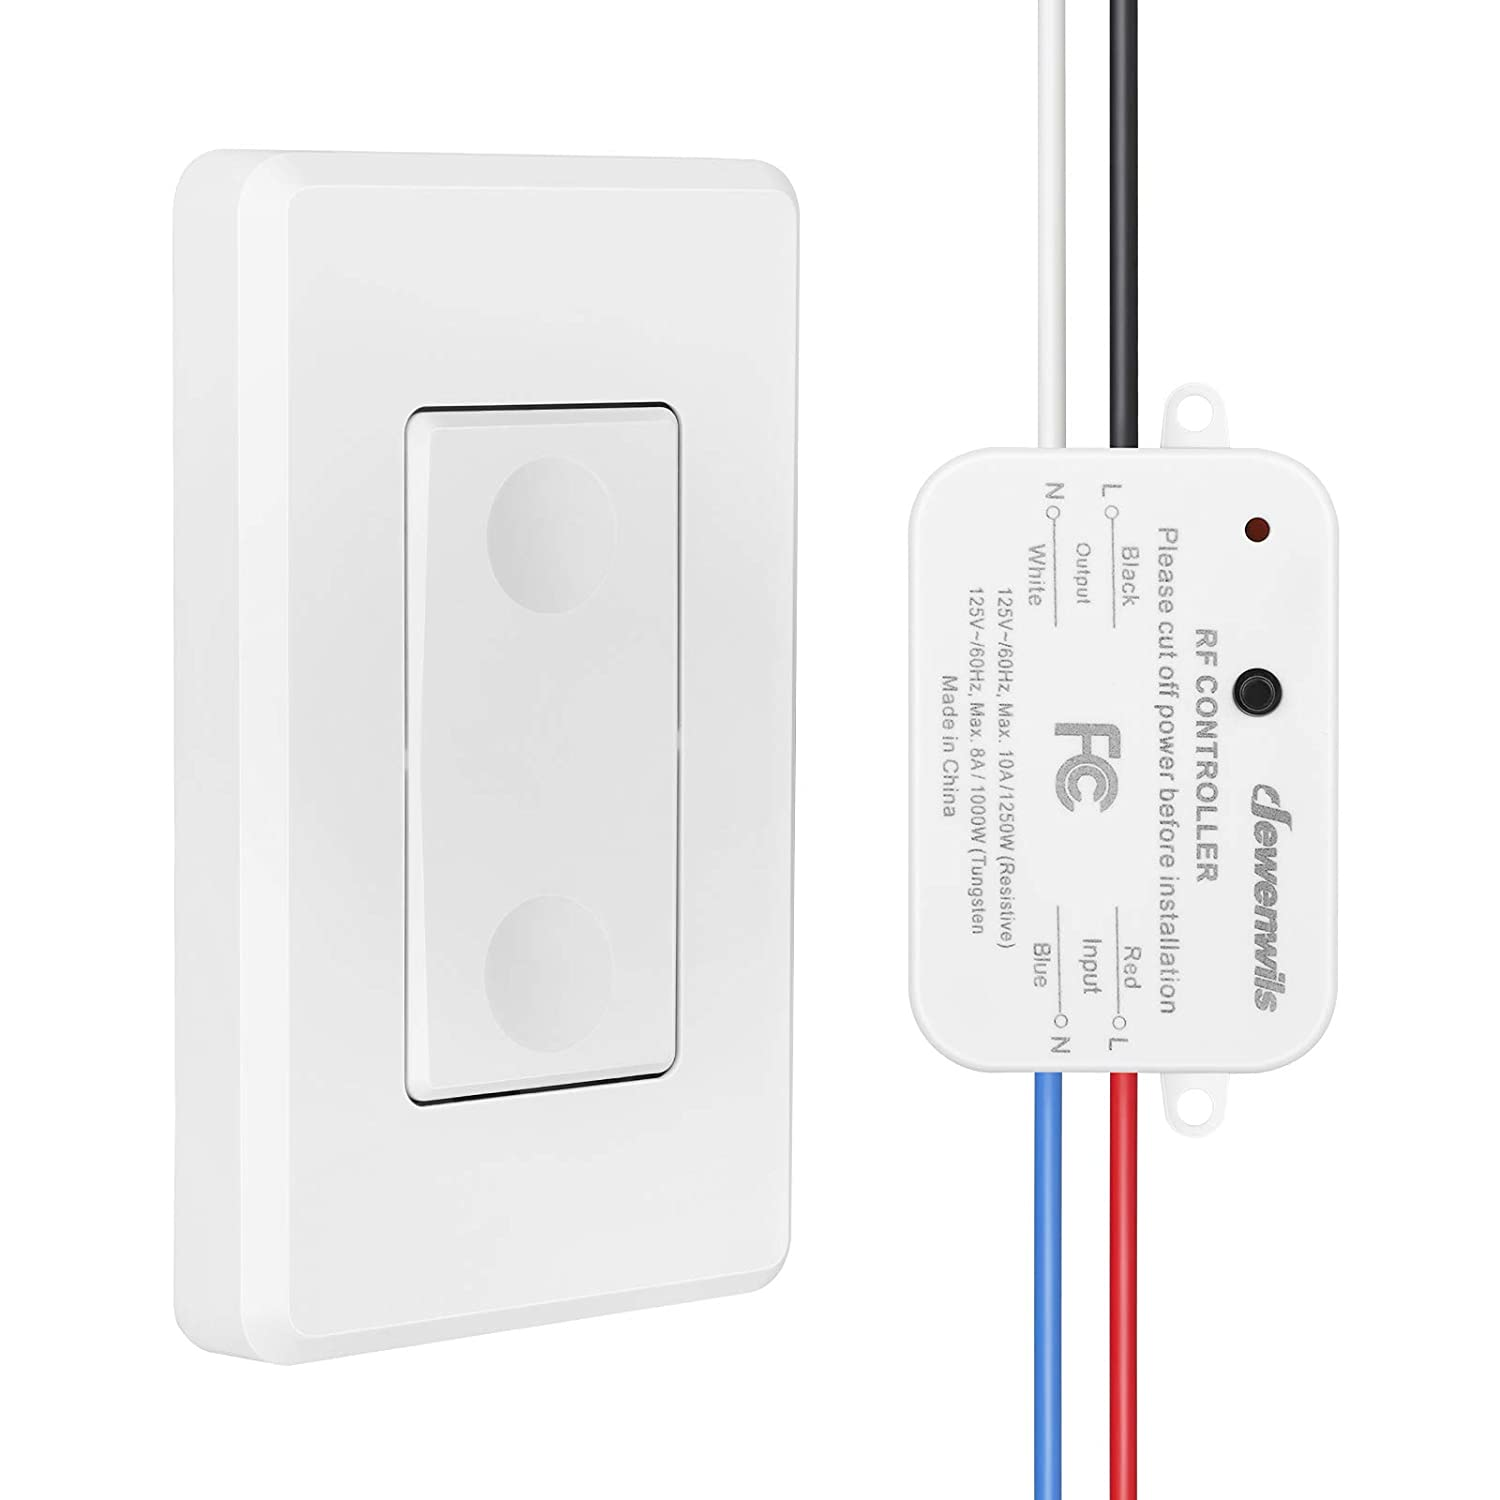 DEWENWILS Wireless Light Switch and Receiver Kit, No in-Wall Wiring Required,Remote Control Wall Switch Lighting Fixture for Ceiling Lights, Fans, Lamps, 100 Ft RF Range, Programmable